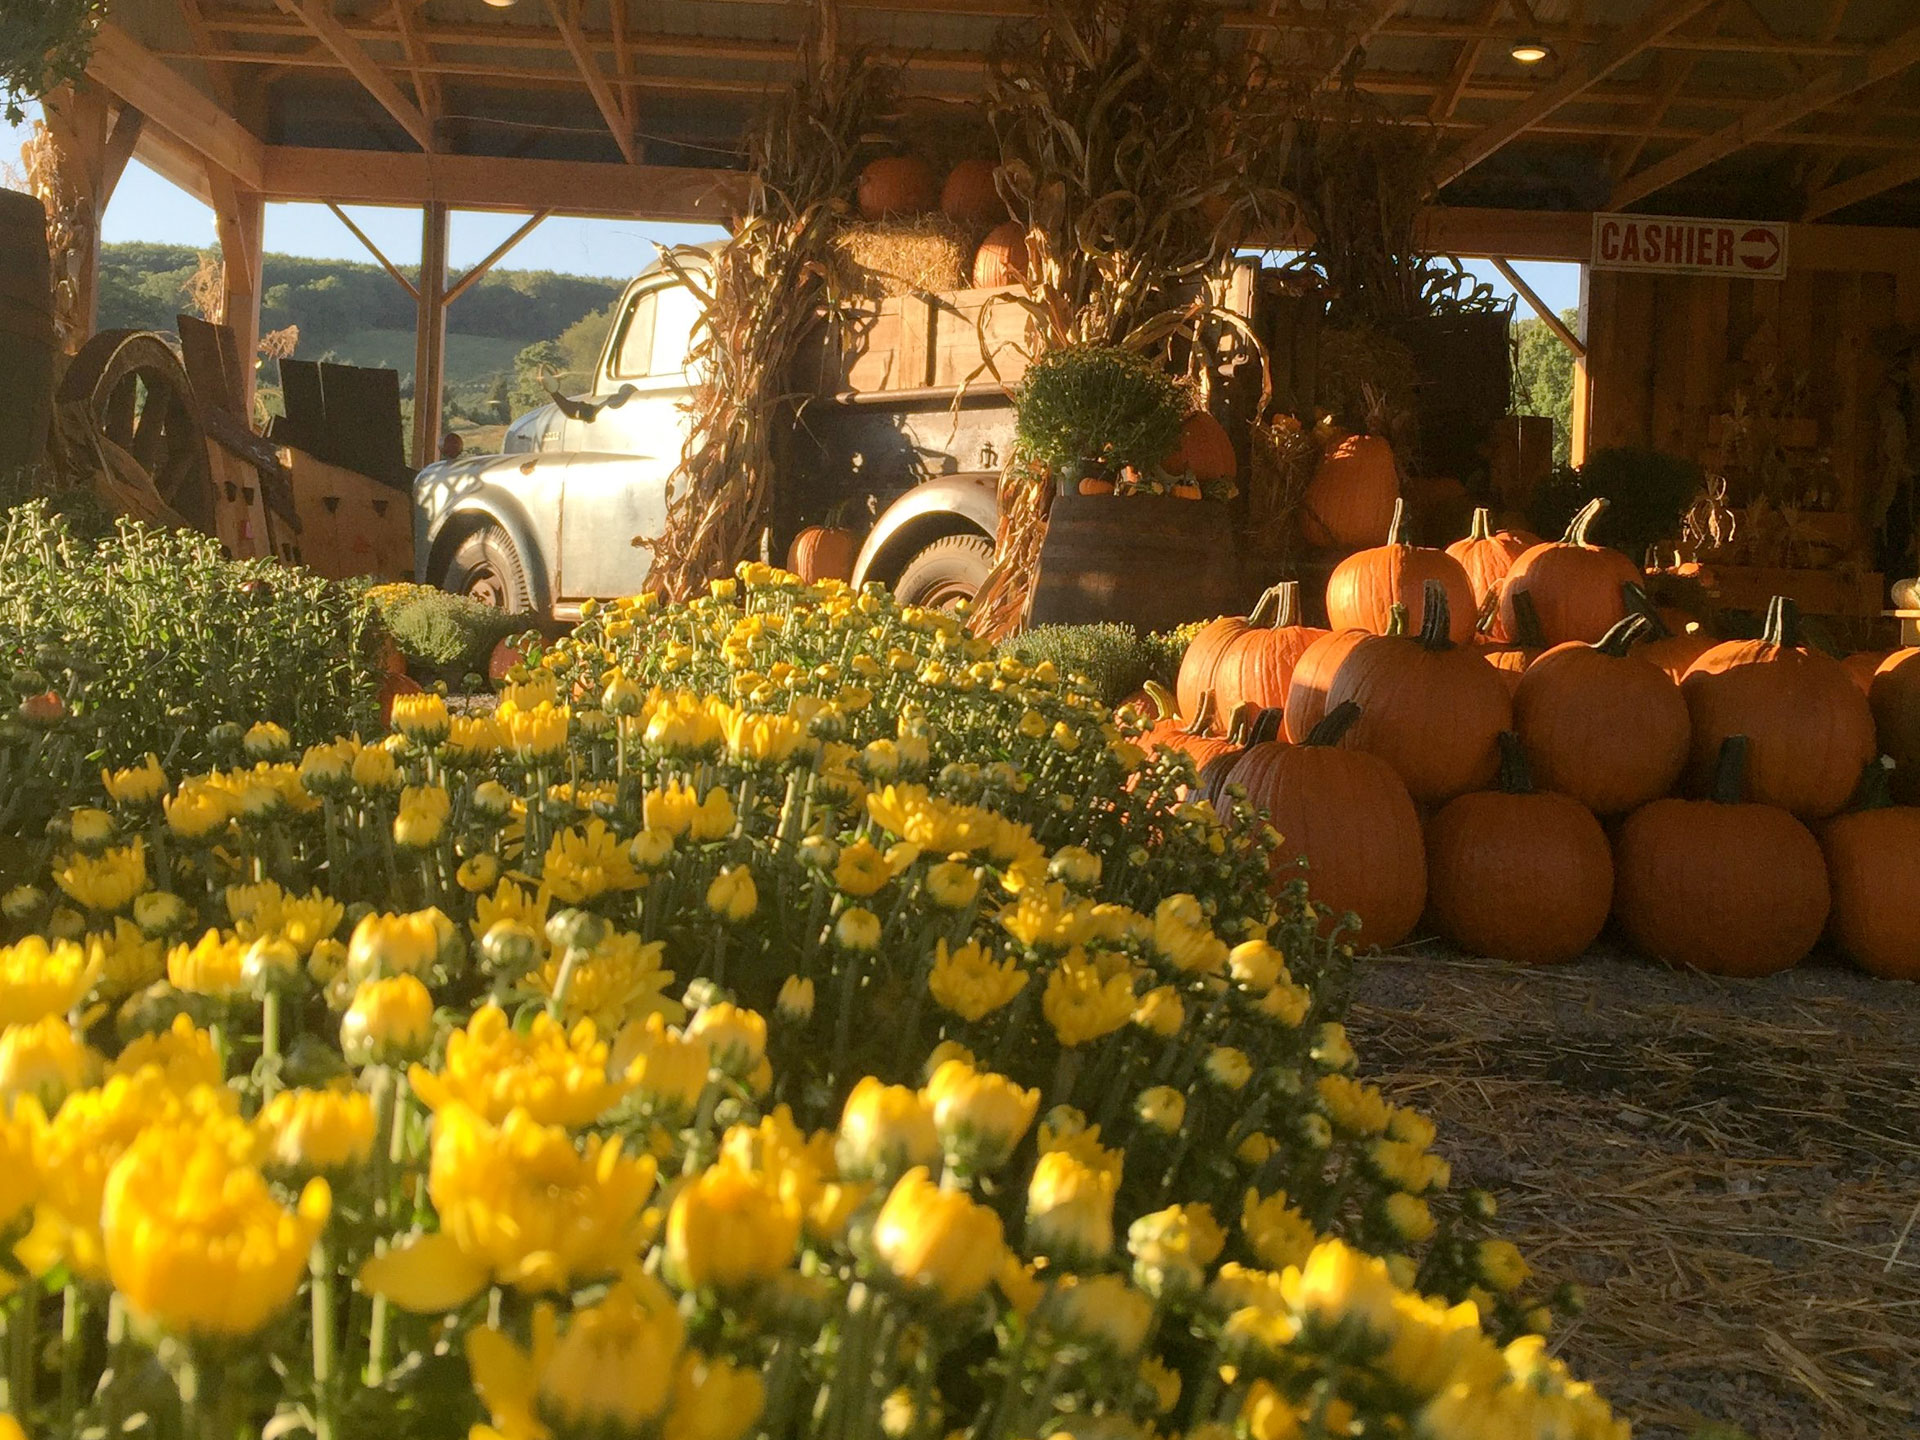 pumpkins, mums & an old truck decorated